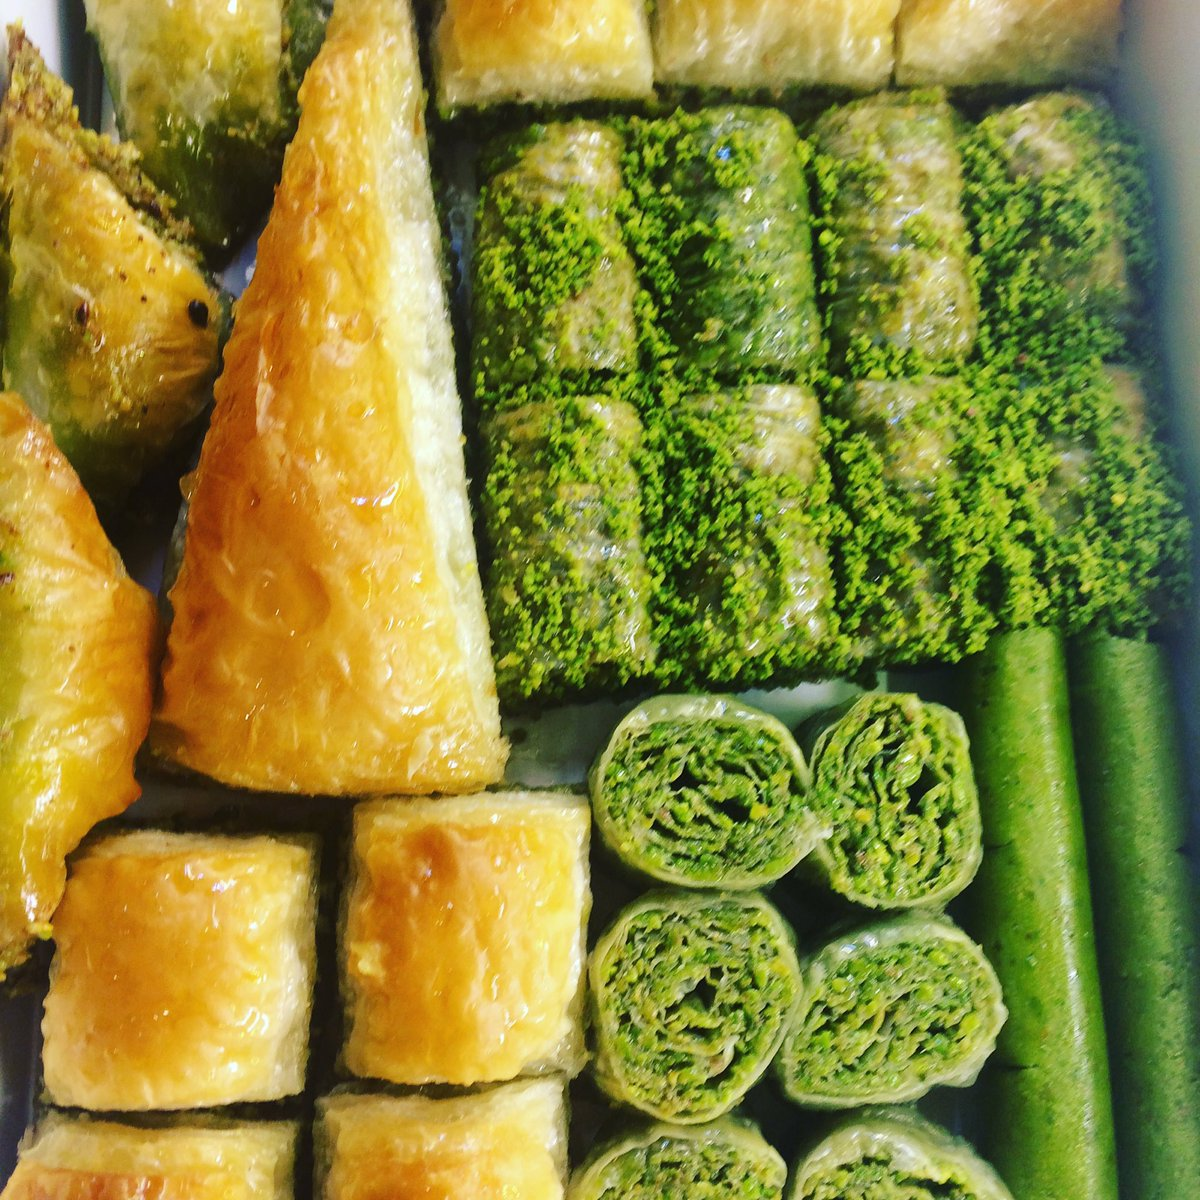 10 Delicious Turkish Desserts and Sweets to Try